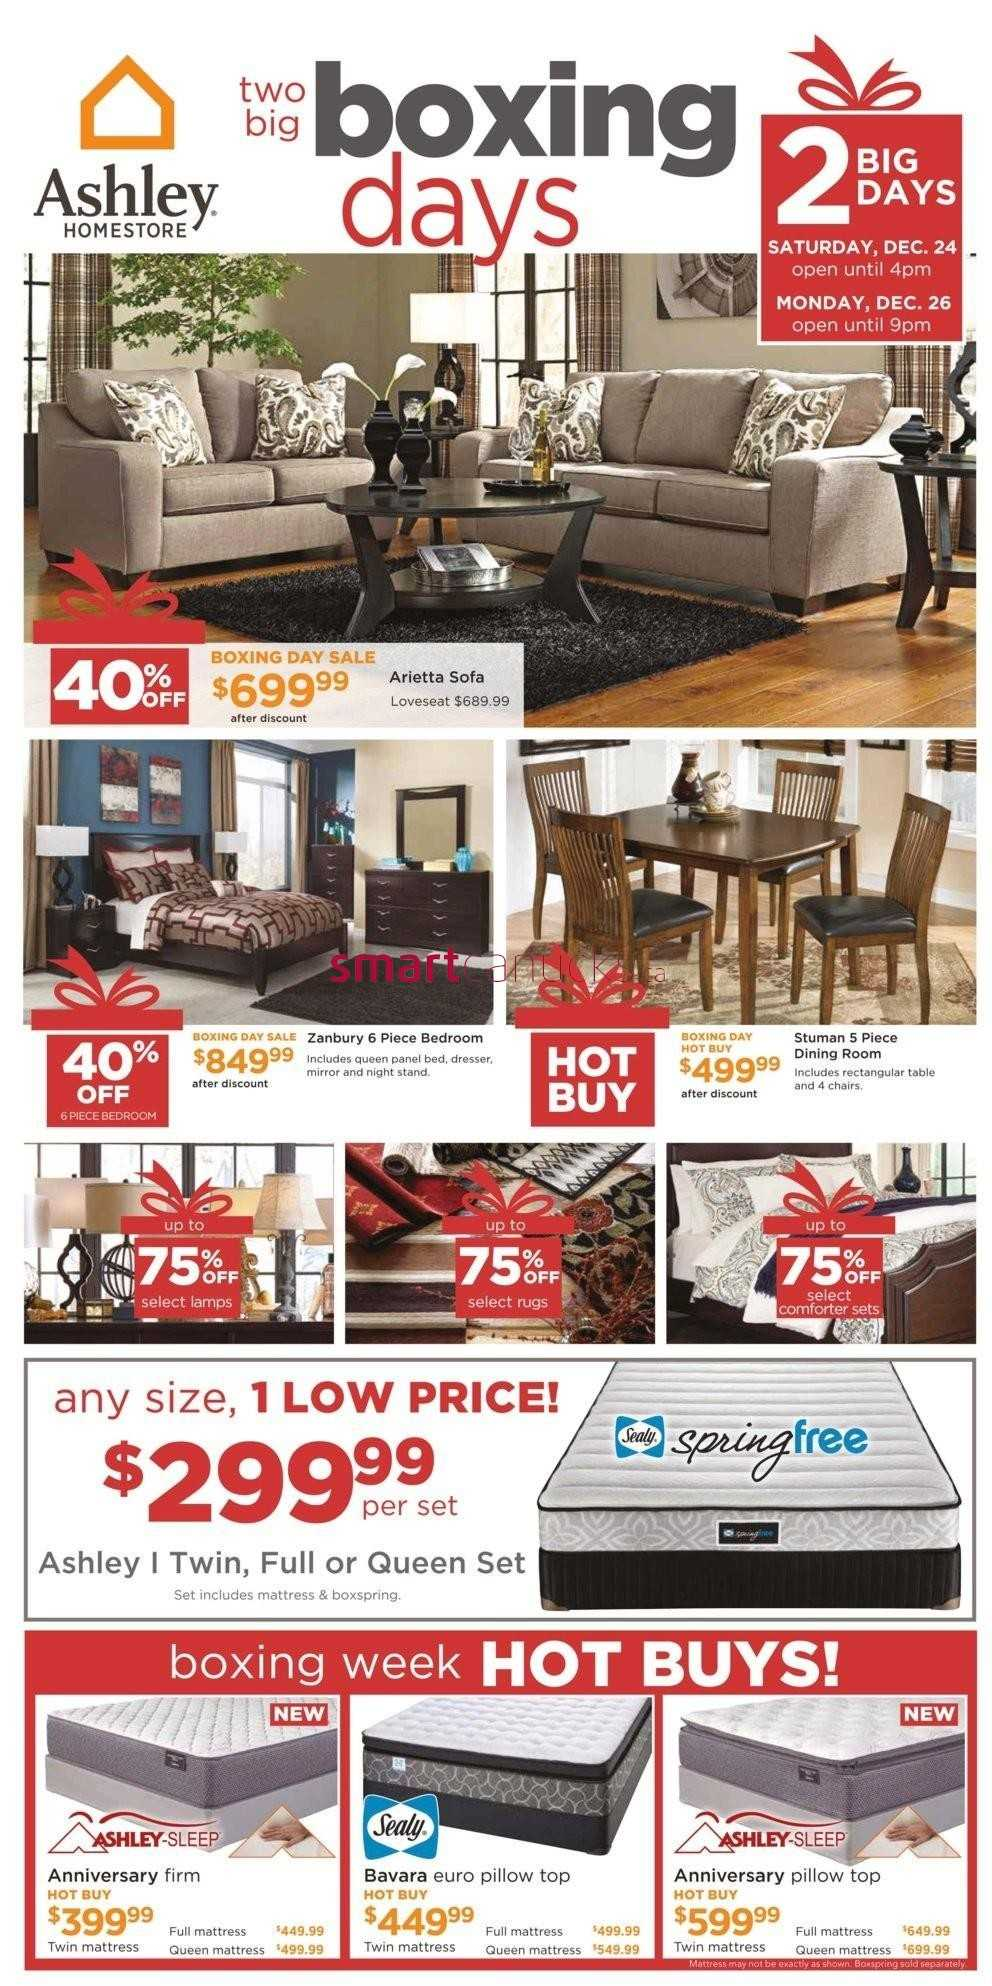 Ashley homestore on boxing day flyer december 24 26 for Home shop 24